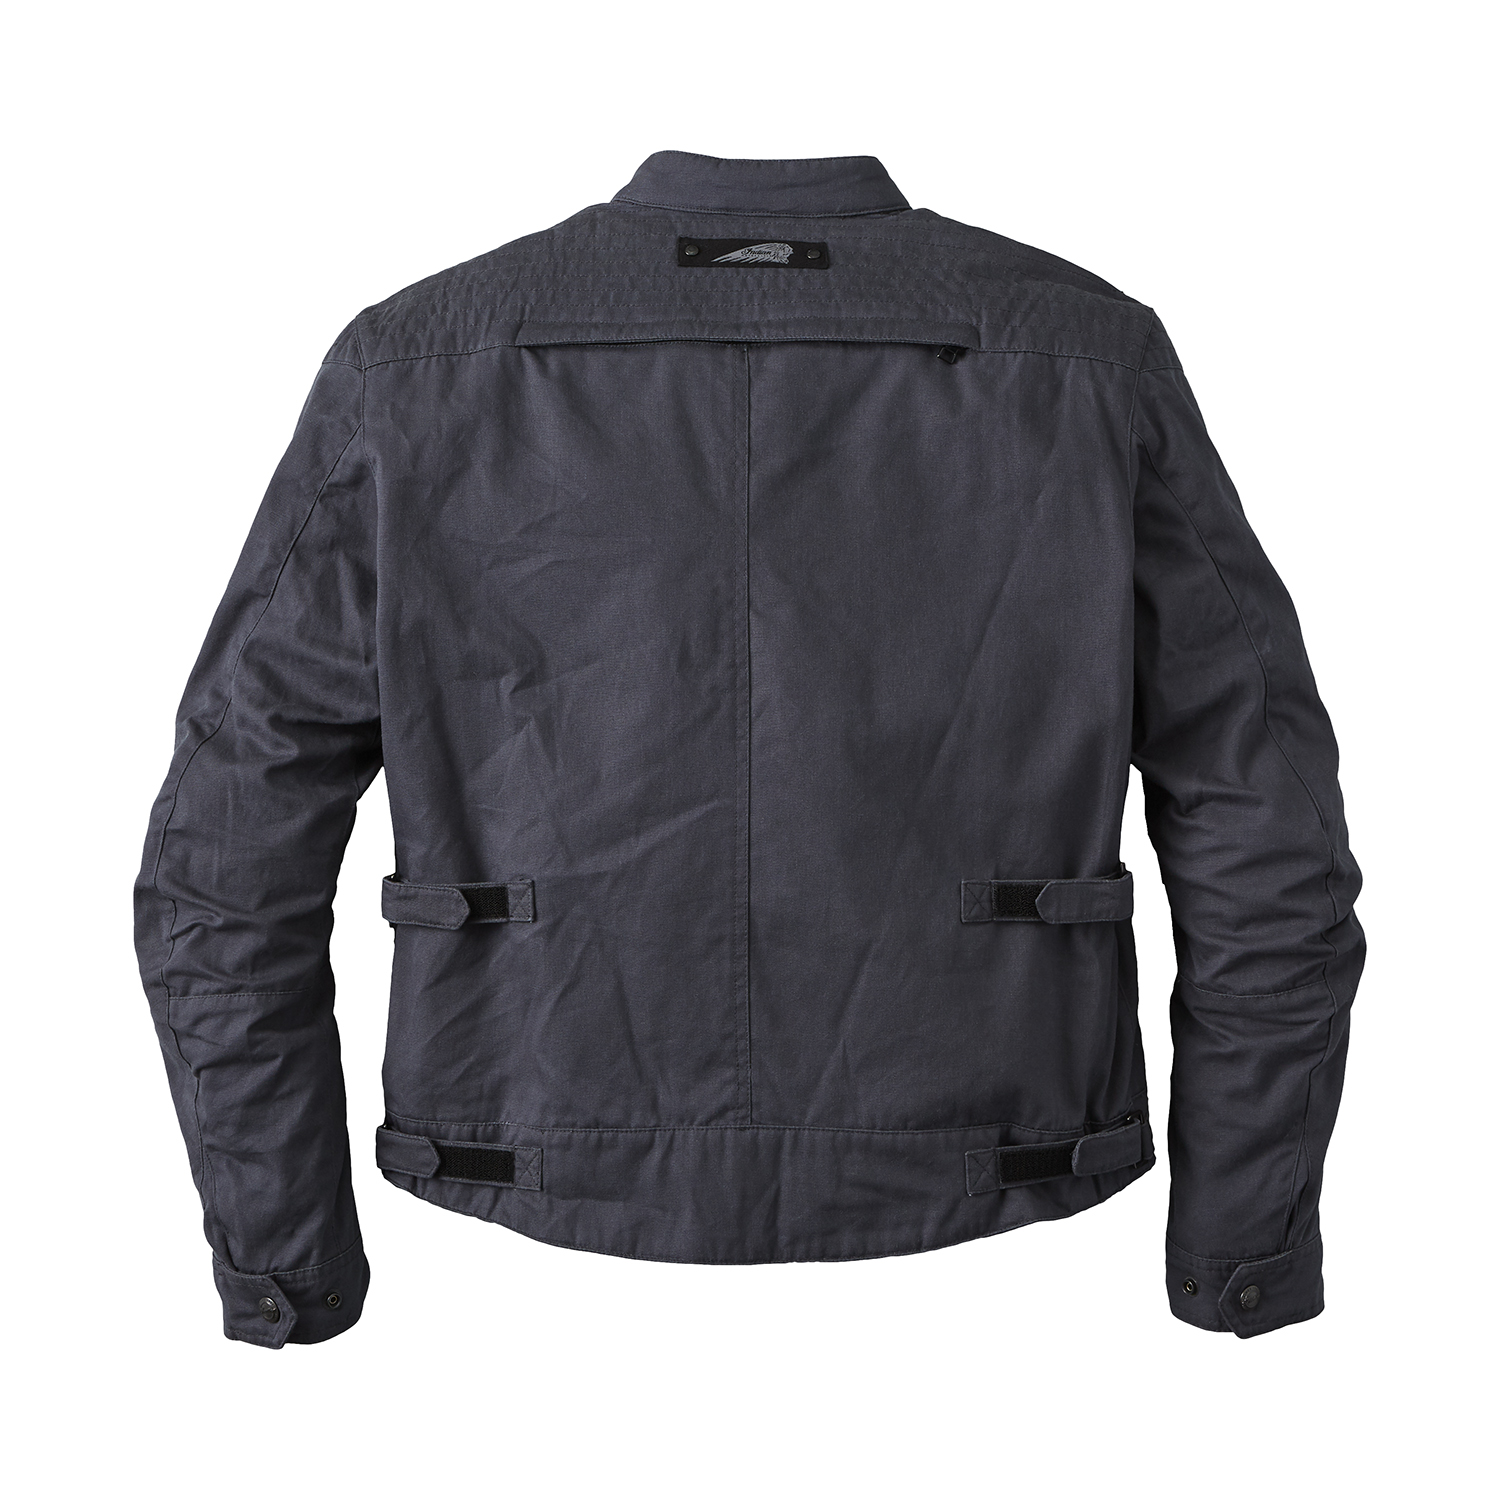 miniature 10 - Indian Motorcycle Men's Waxed Cotton Sacramento Riding Jacket with Removable